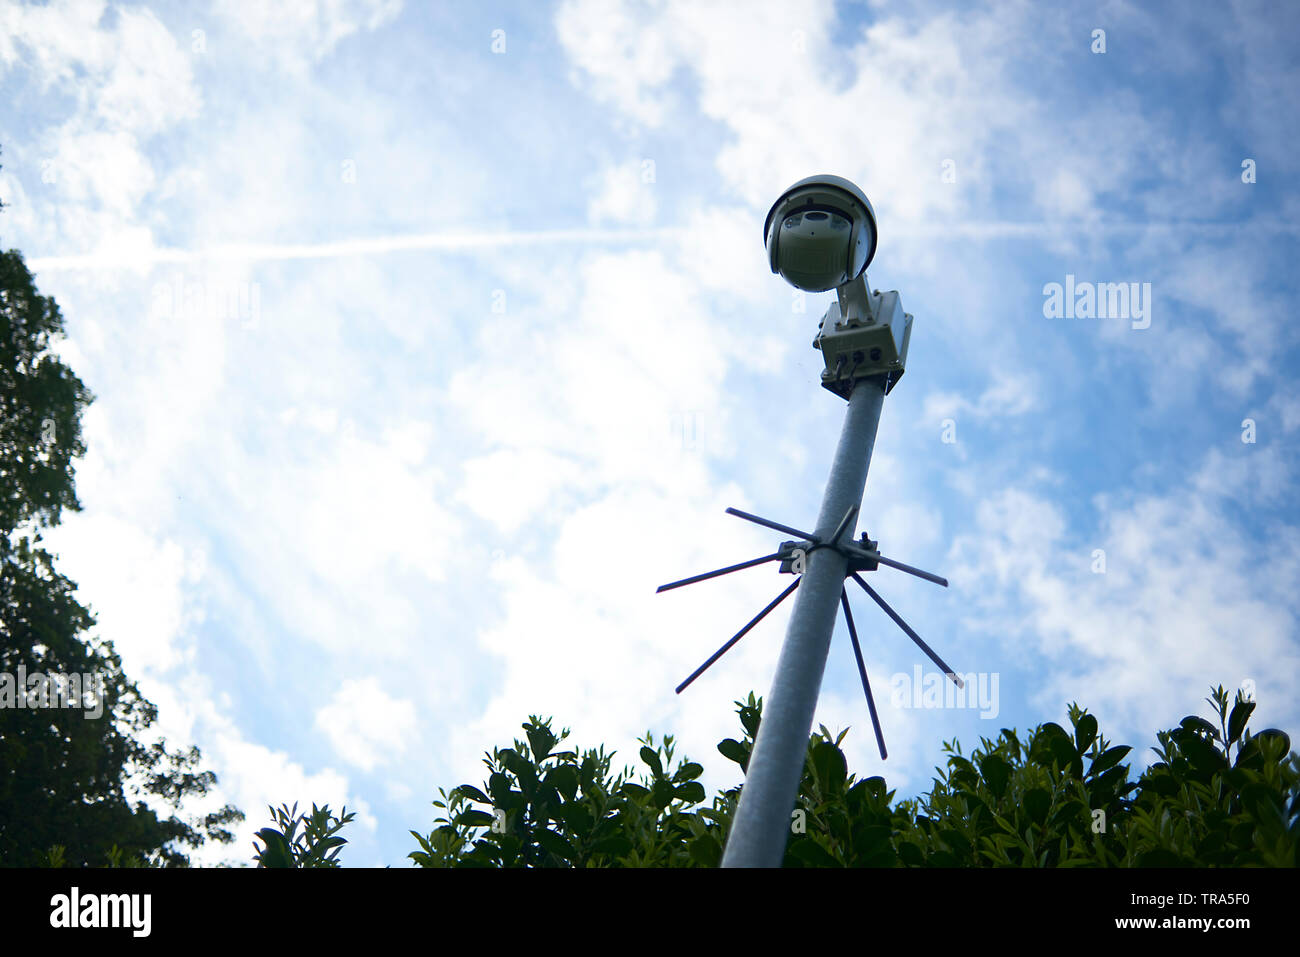 High tech camera up high on a pole recording and tracking the movement of people and stranger in order to protect the place - Stock Image